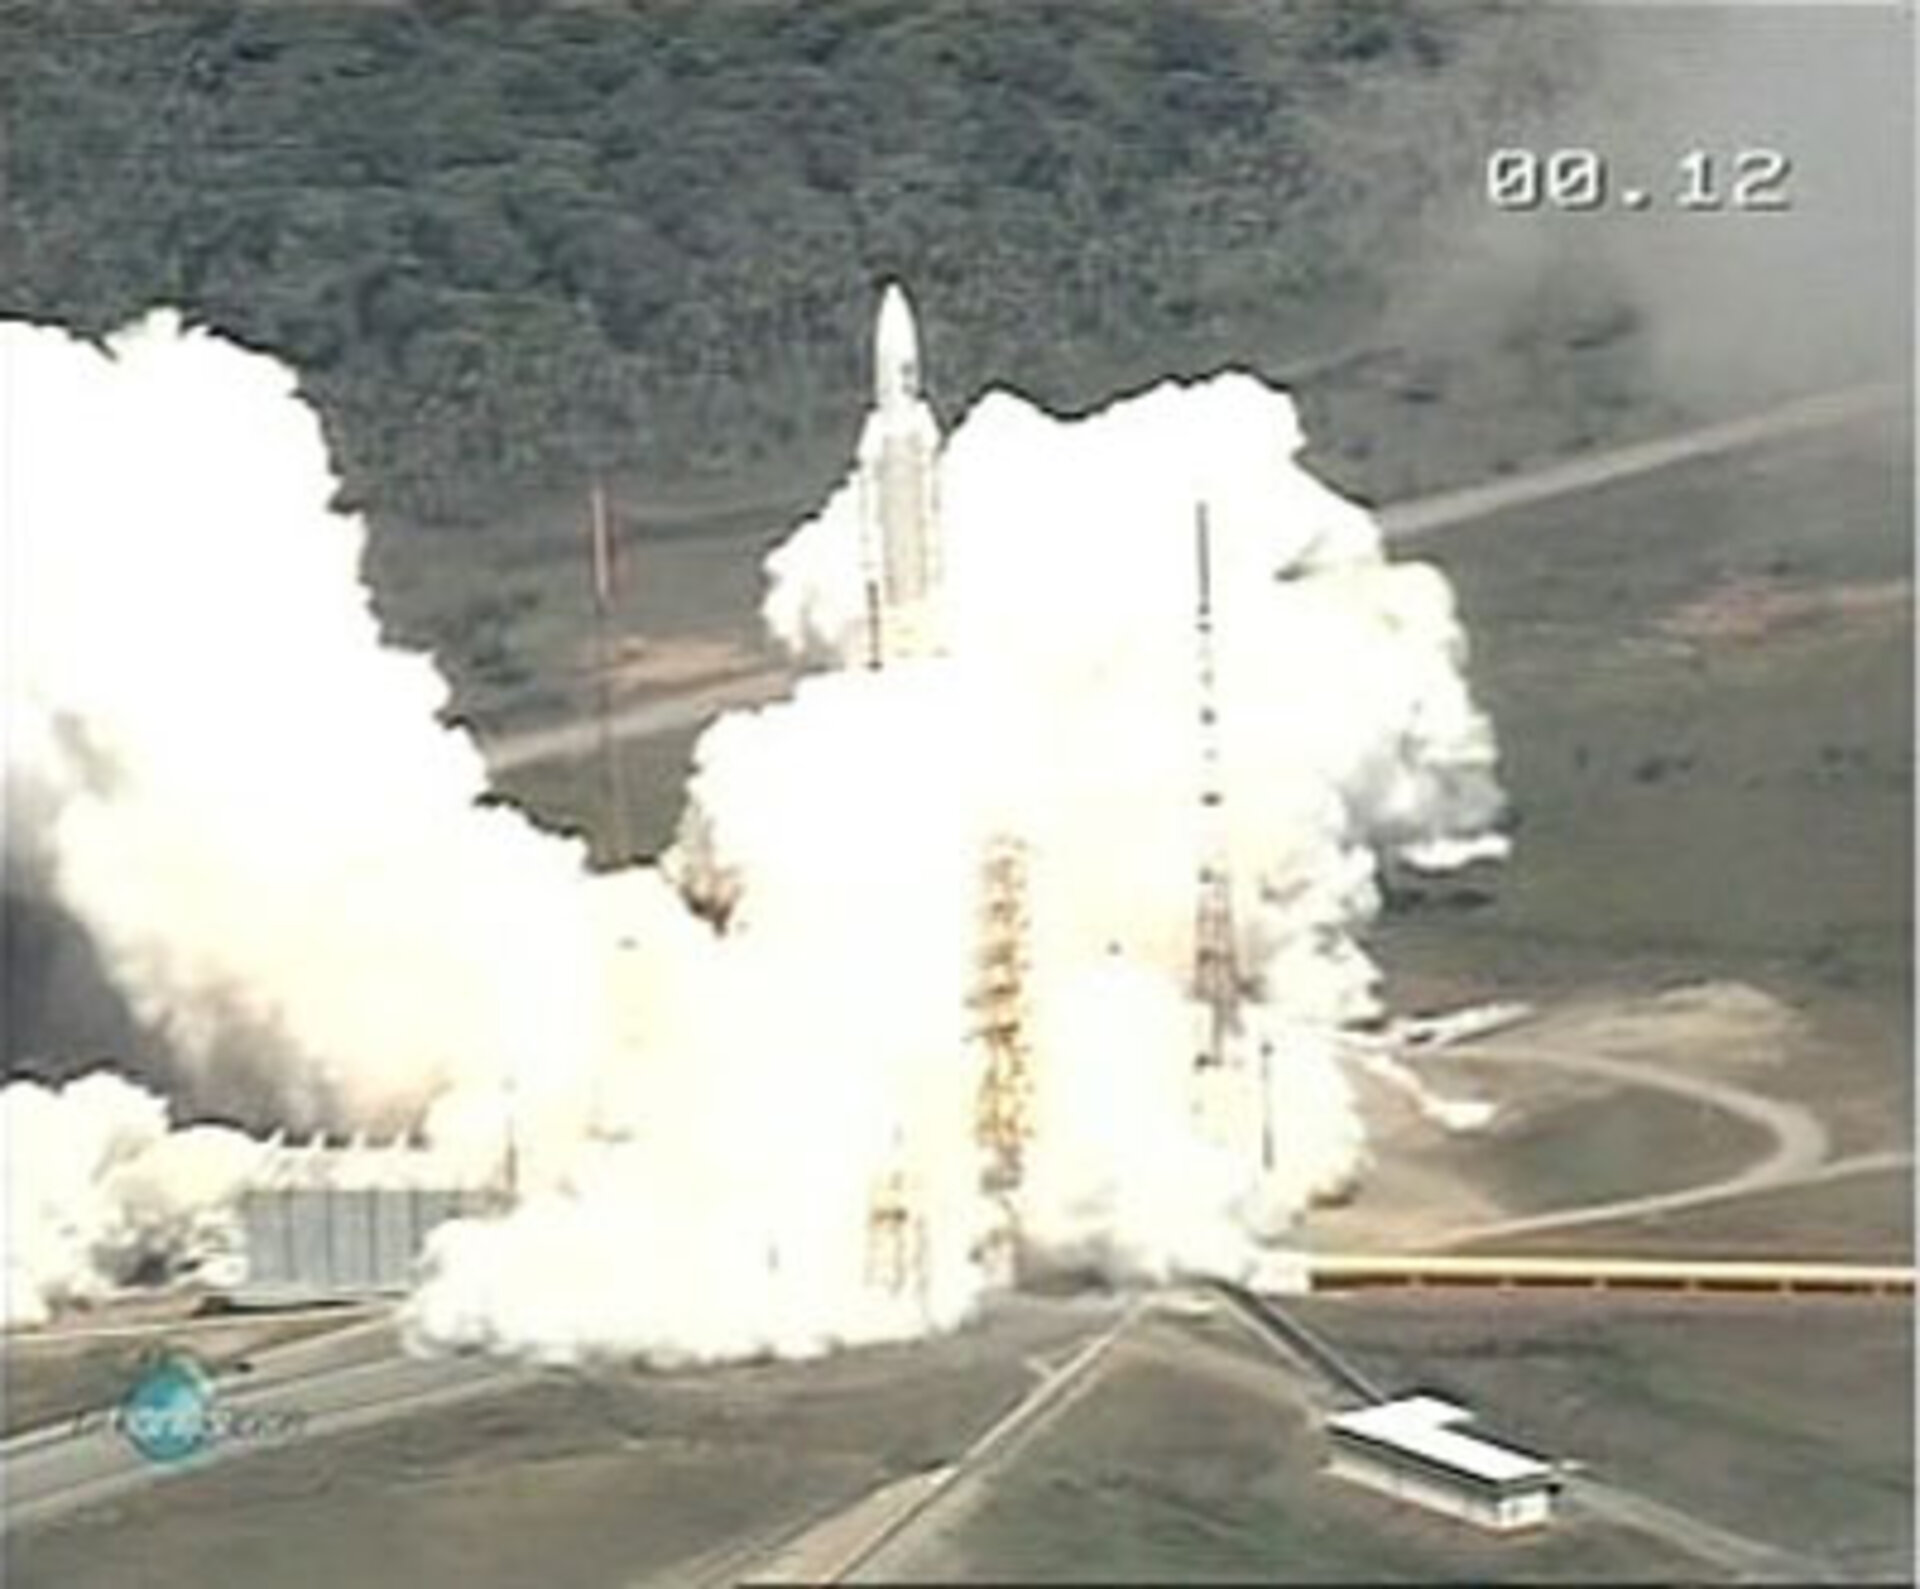 Ariane 5 at liftoff